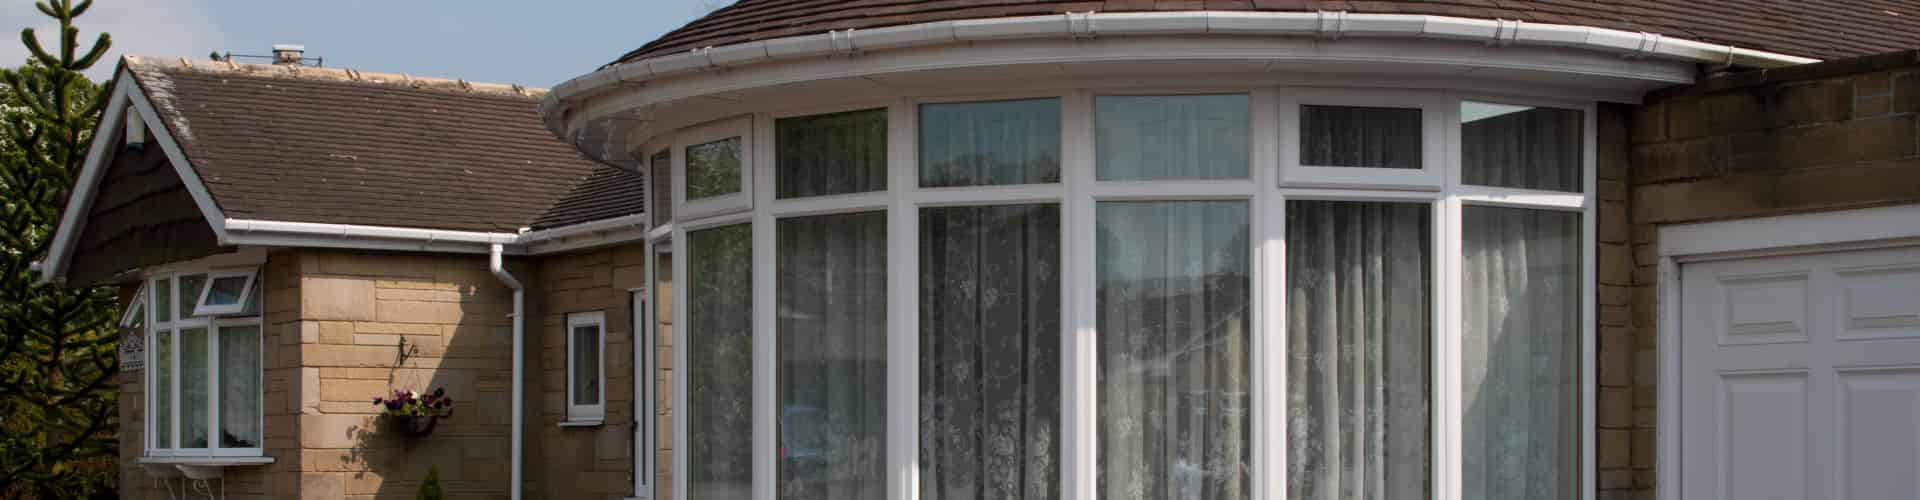 bow amp bay windows reading berkshire abbey windows upvc bow windows bay windows upvc double glazing